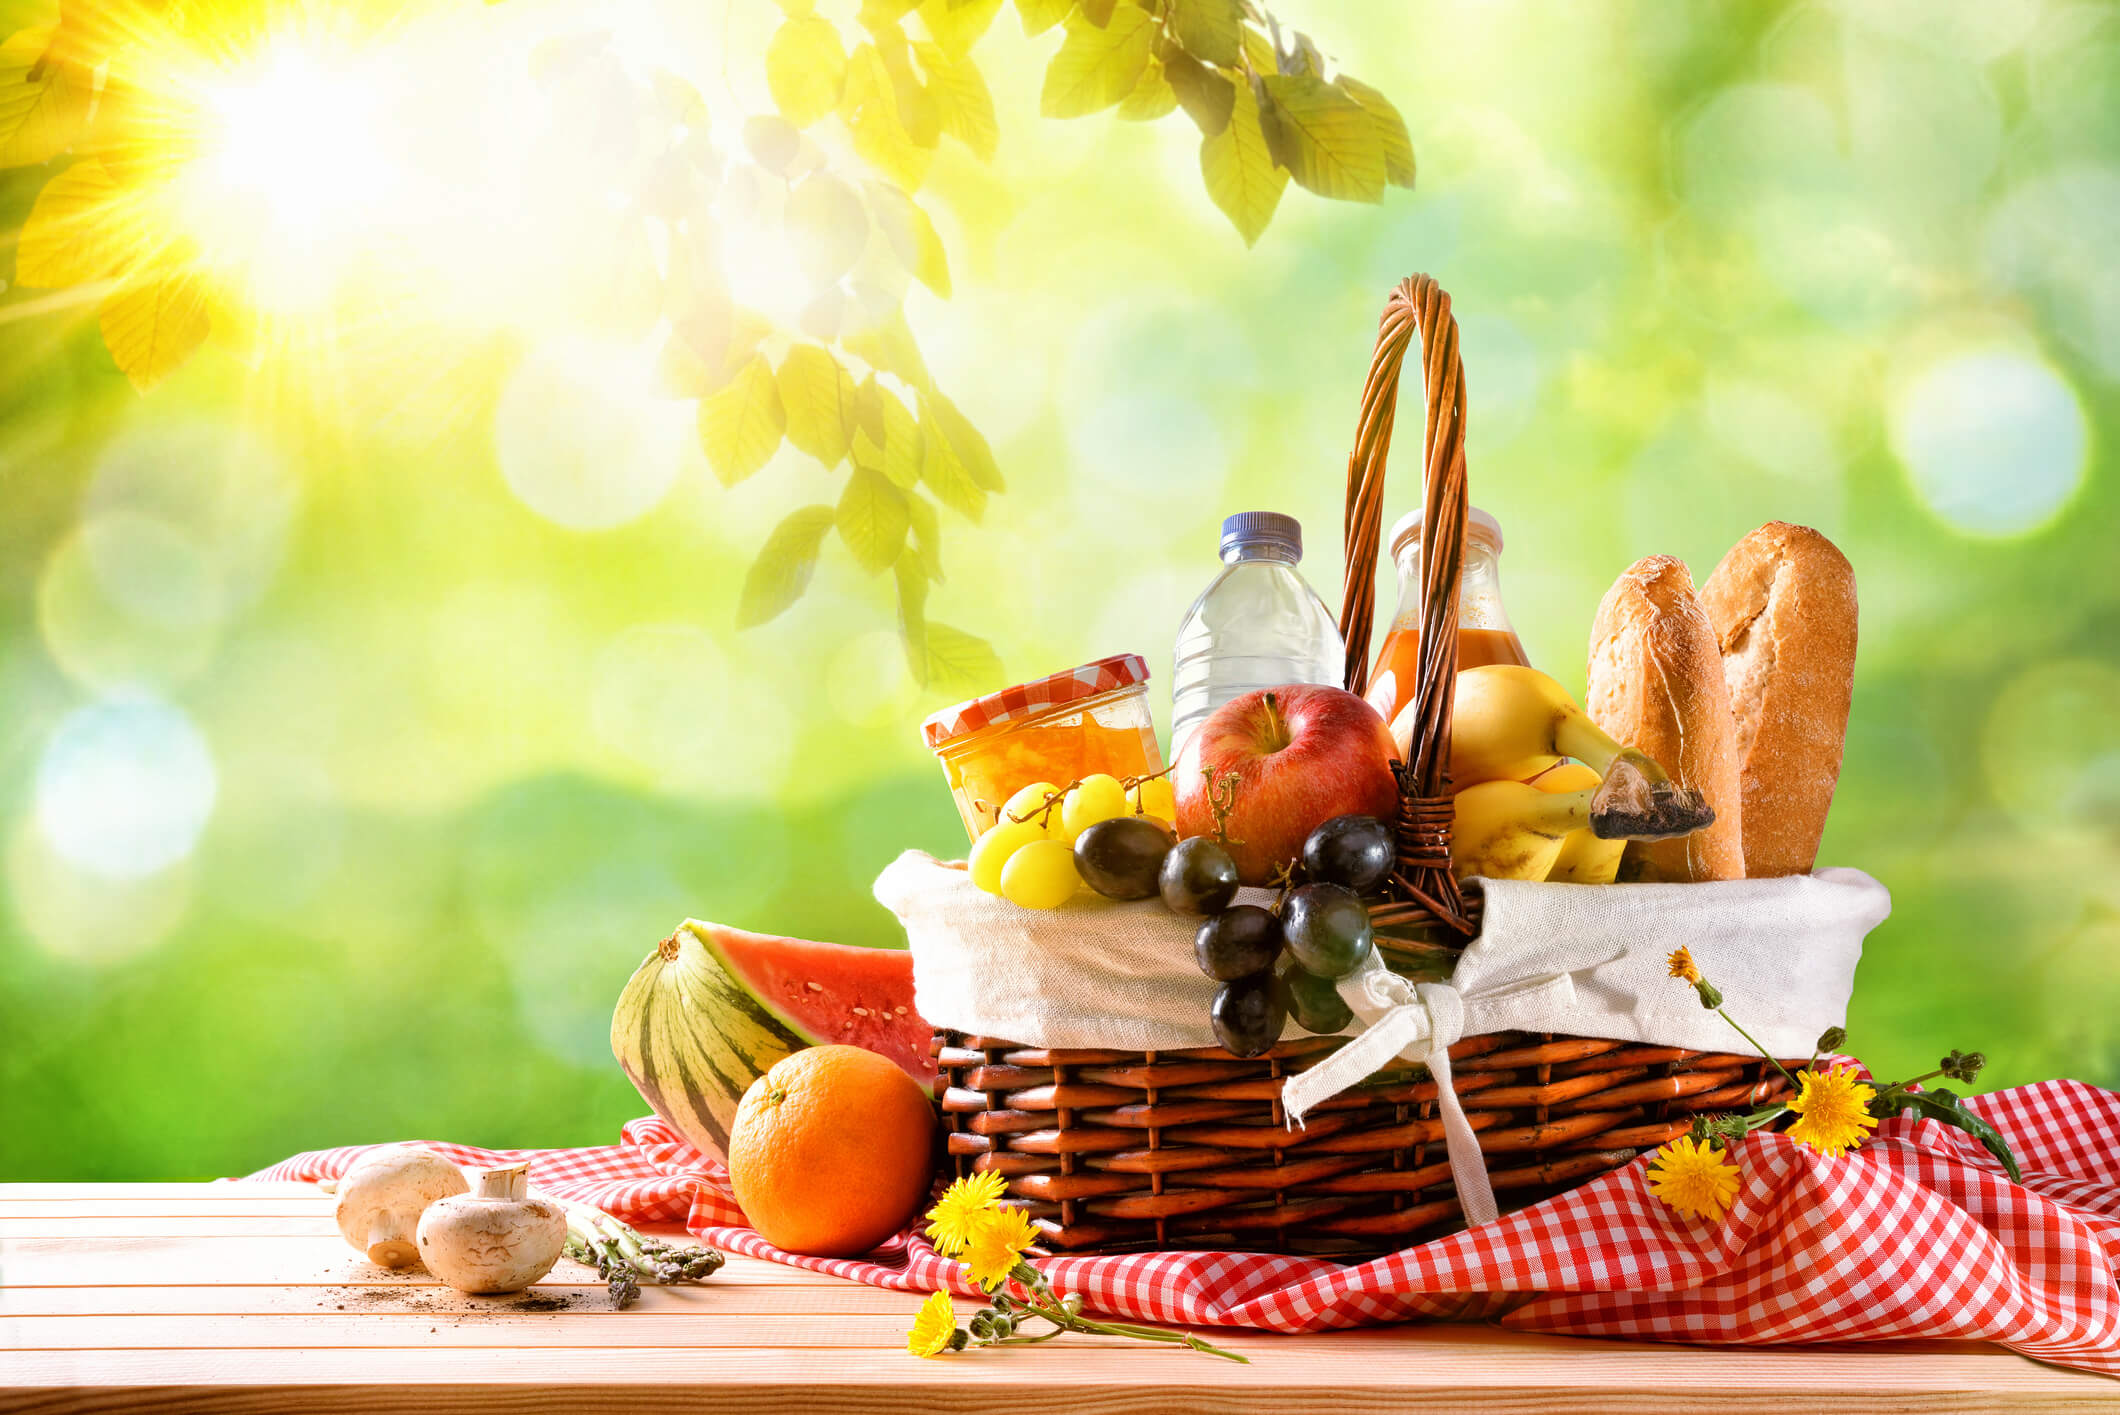 Picnic wicker basket with food on table in the field with green nature background.